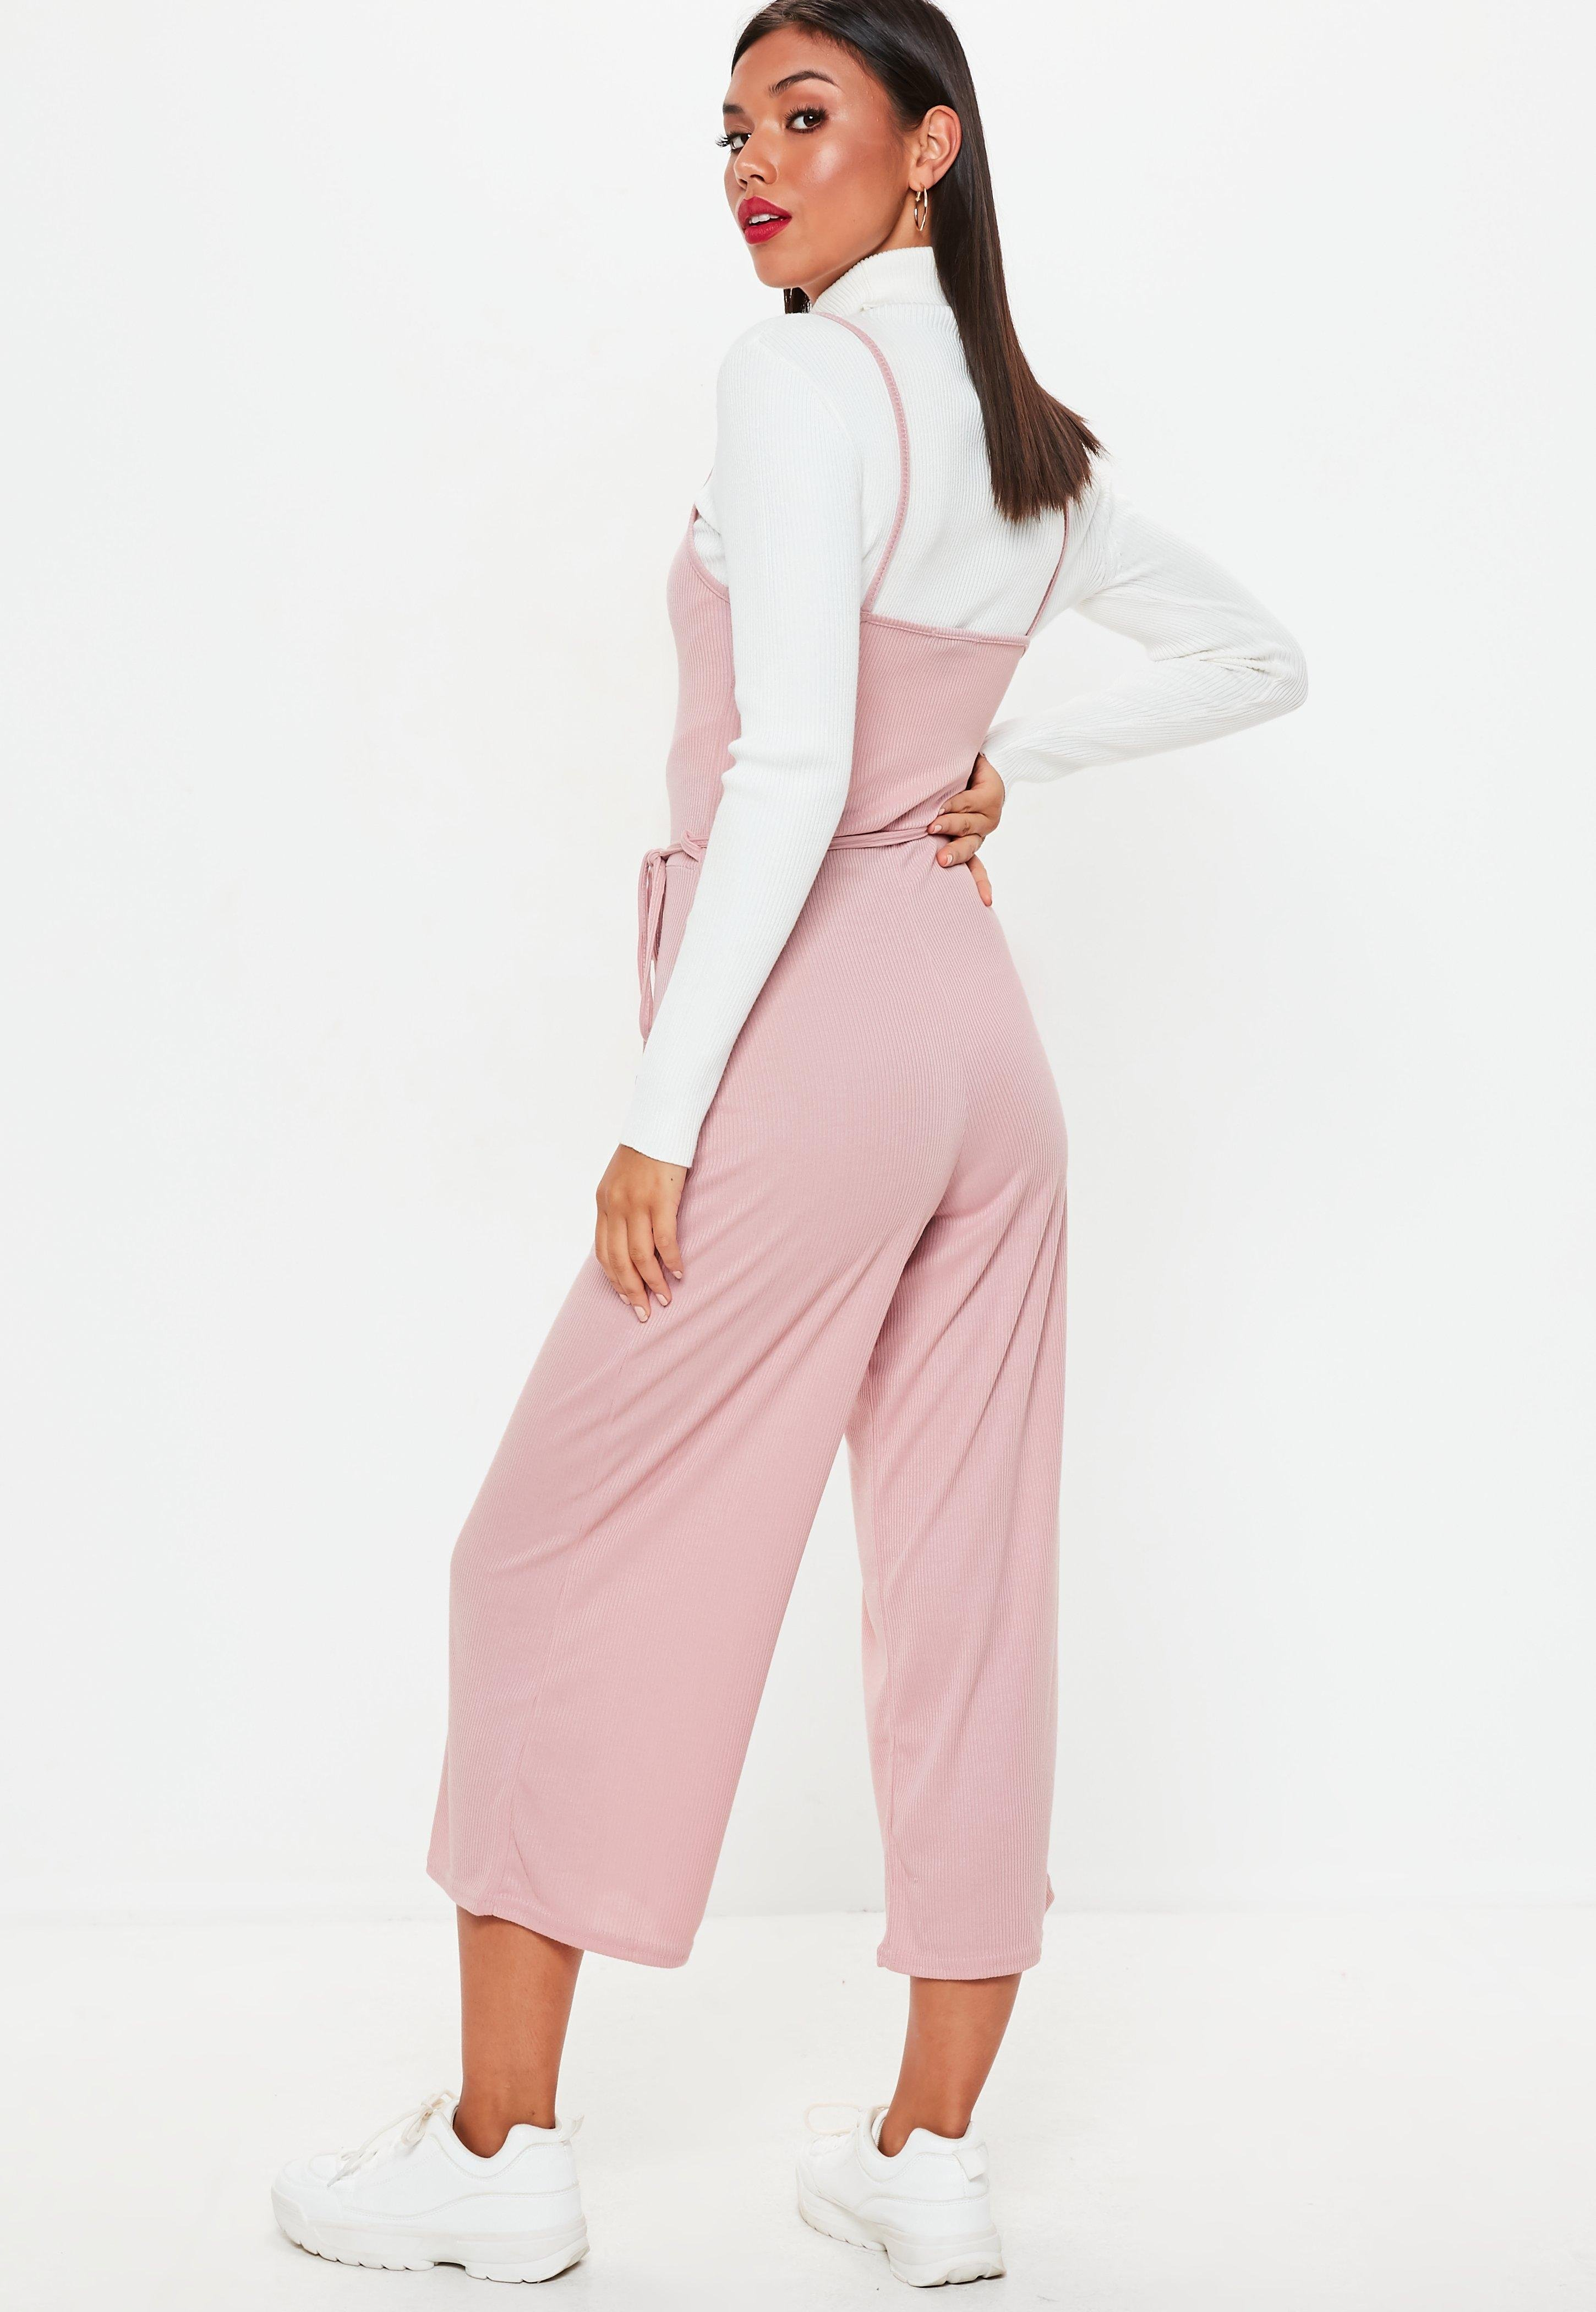 ca3ee1aa772d Lyst - Missguided Pink Rib Cami Culotte Jumpsuit in Pink - Save 27%